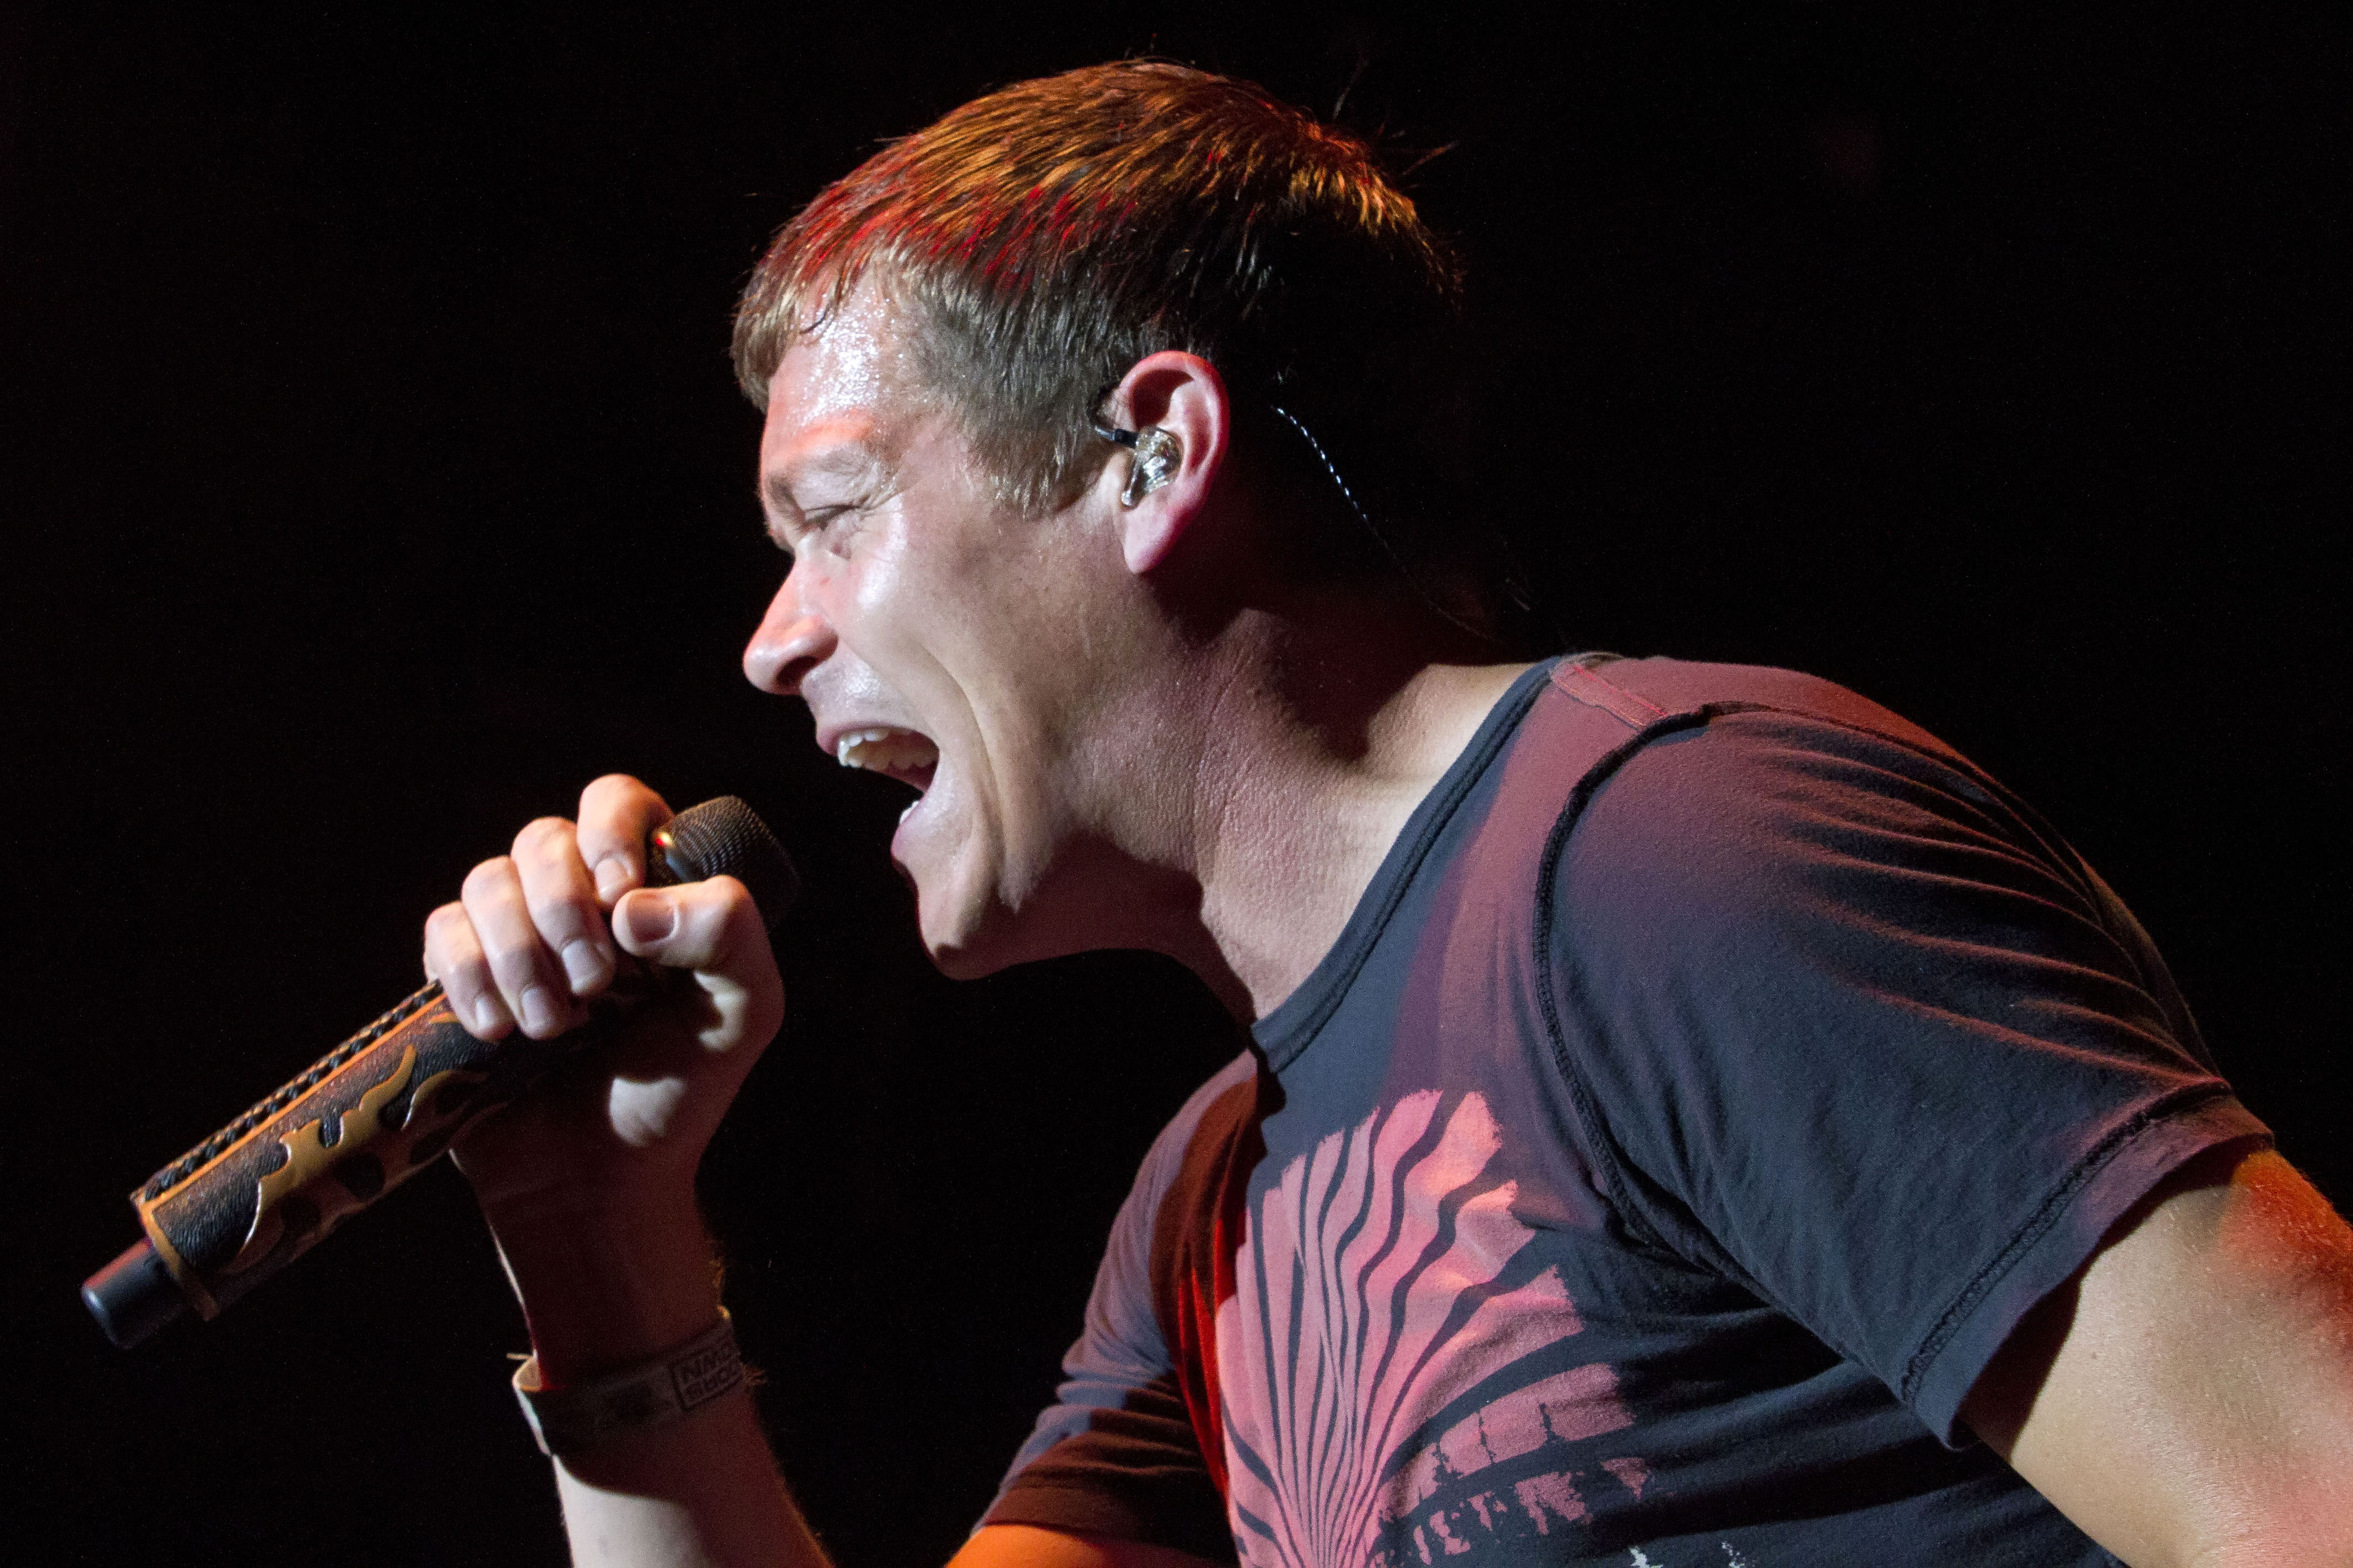 Singer Brad Arnold of 3 Doors Down performs live during a concert at the Columbiahalle on June 11, 2013 in Berlin, Germany.